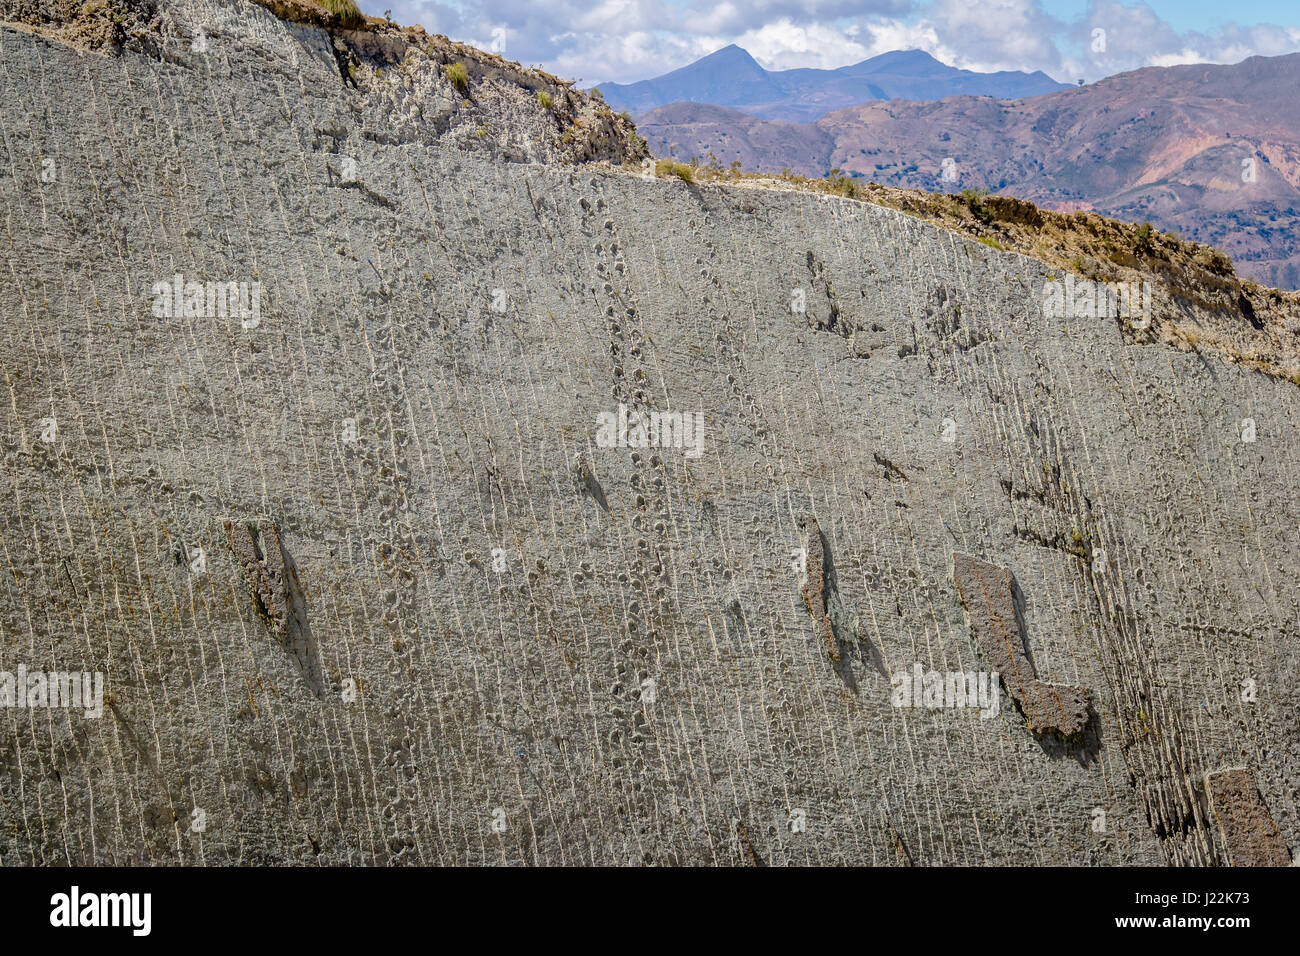 Dinosaur tracks on Cal Orcko Wall - Sucre, Bolivia - Stock Image